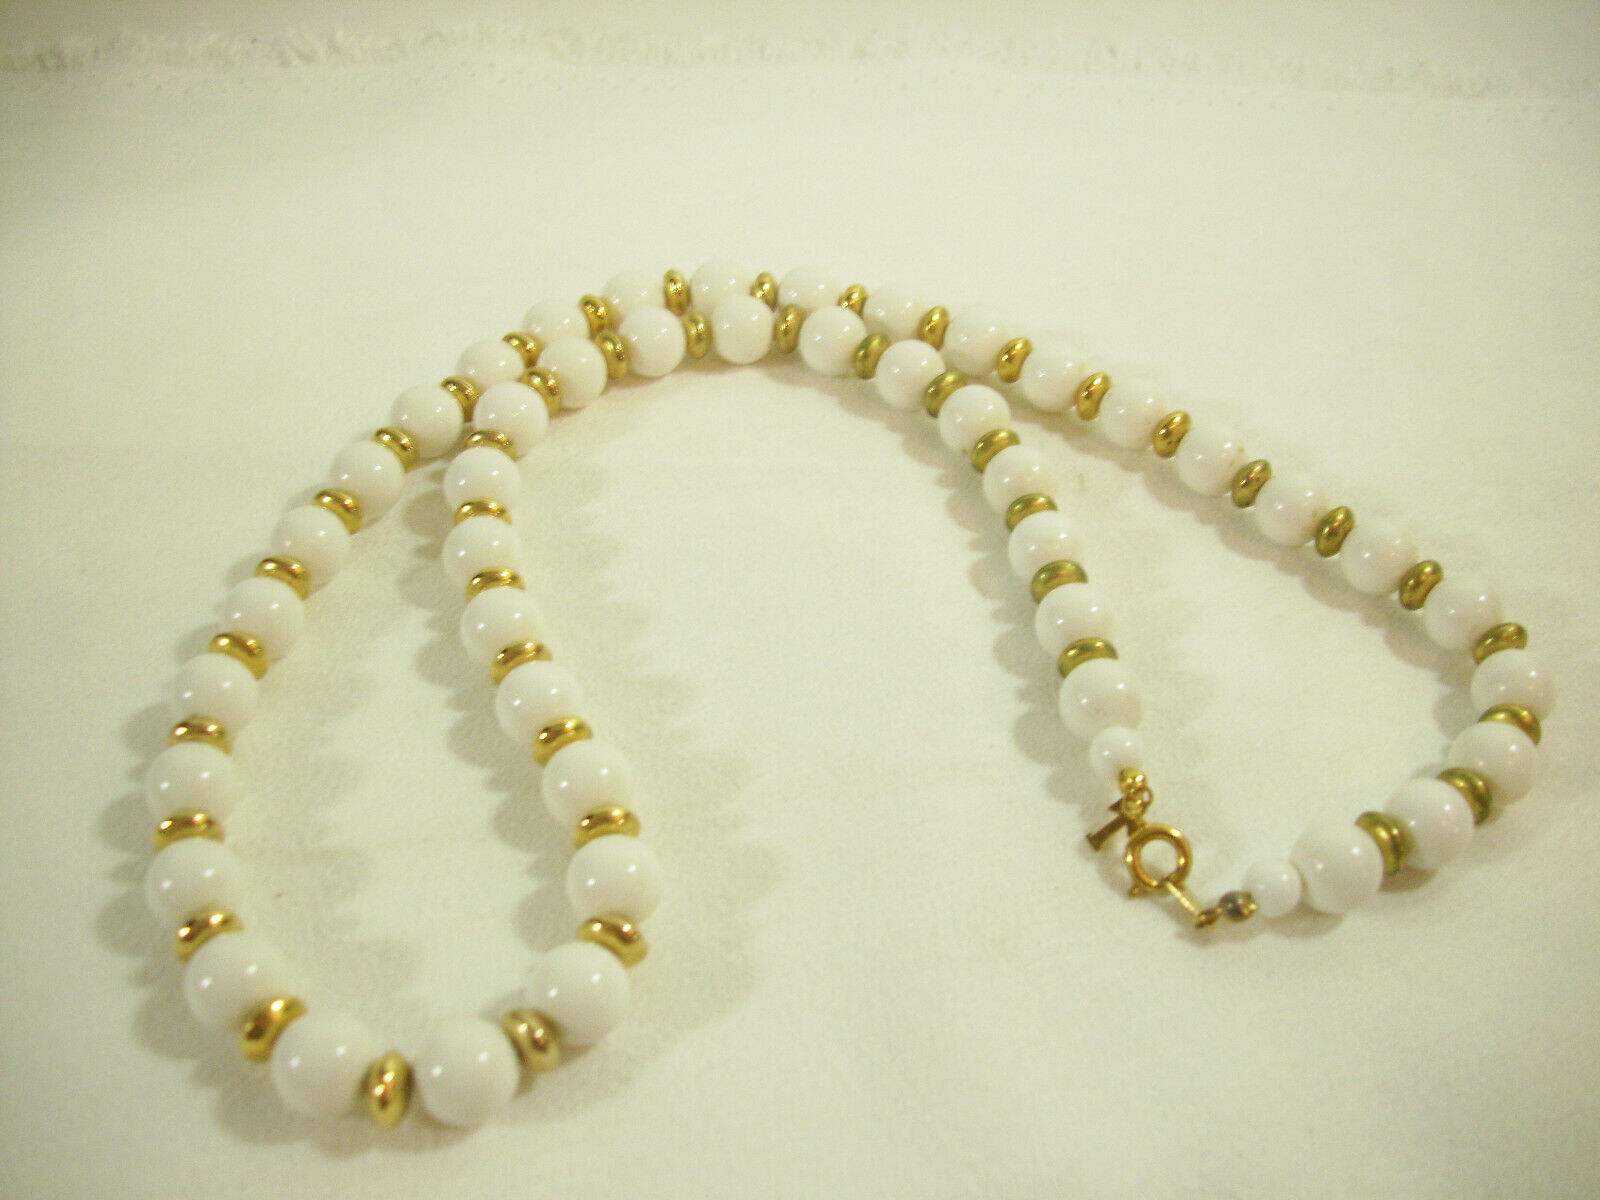 Trifari White Beads Gold Plate Spacers Necklace Strand String Elegant Classic image 5